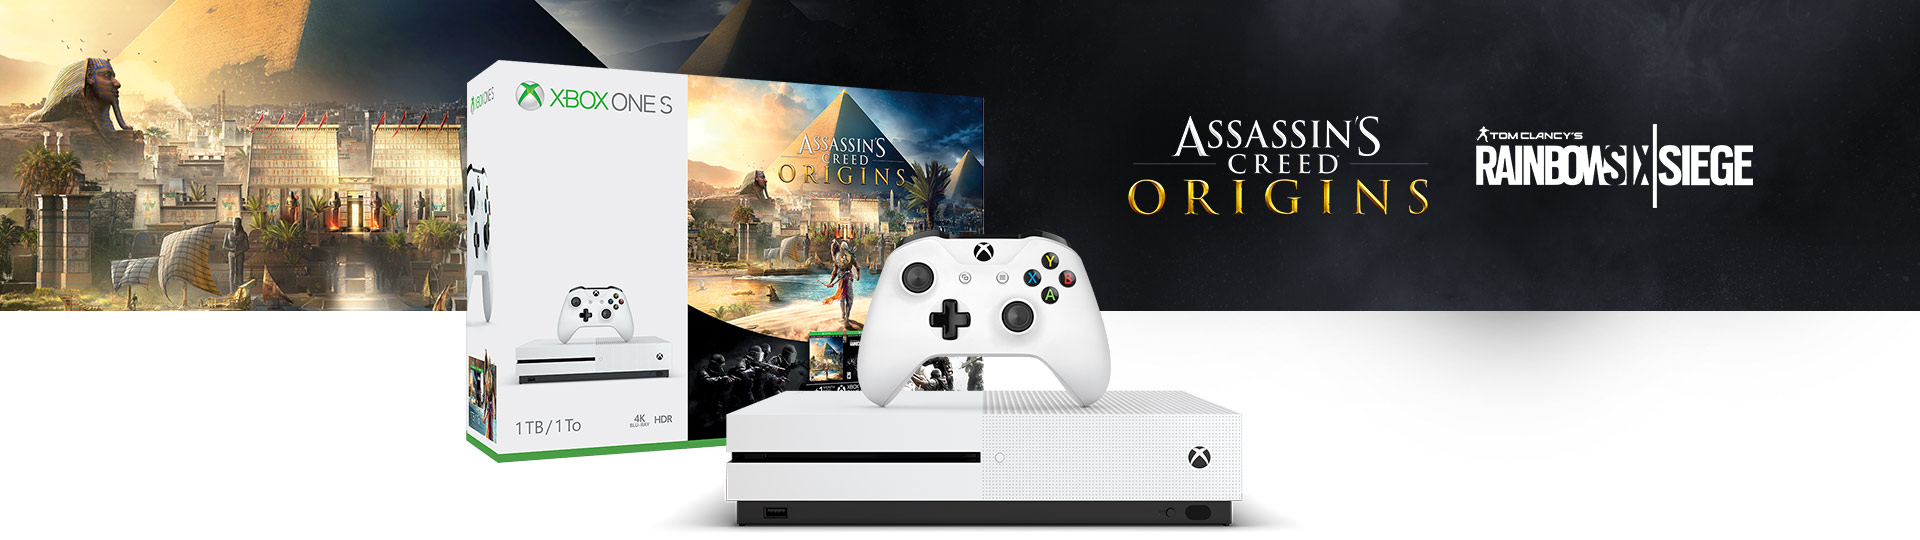 Bundle bonus Xbox One S Assassin's Creed: Origins (1 TB)